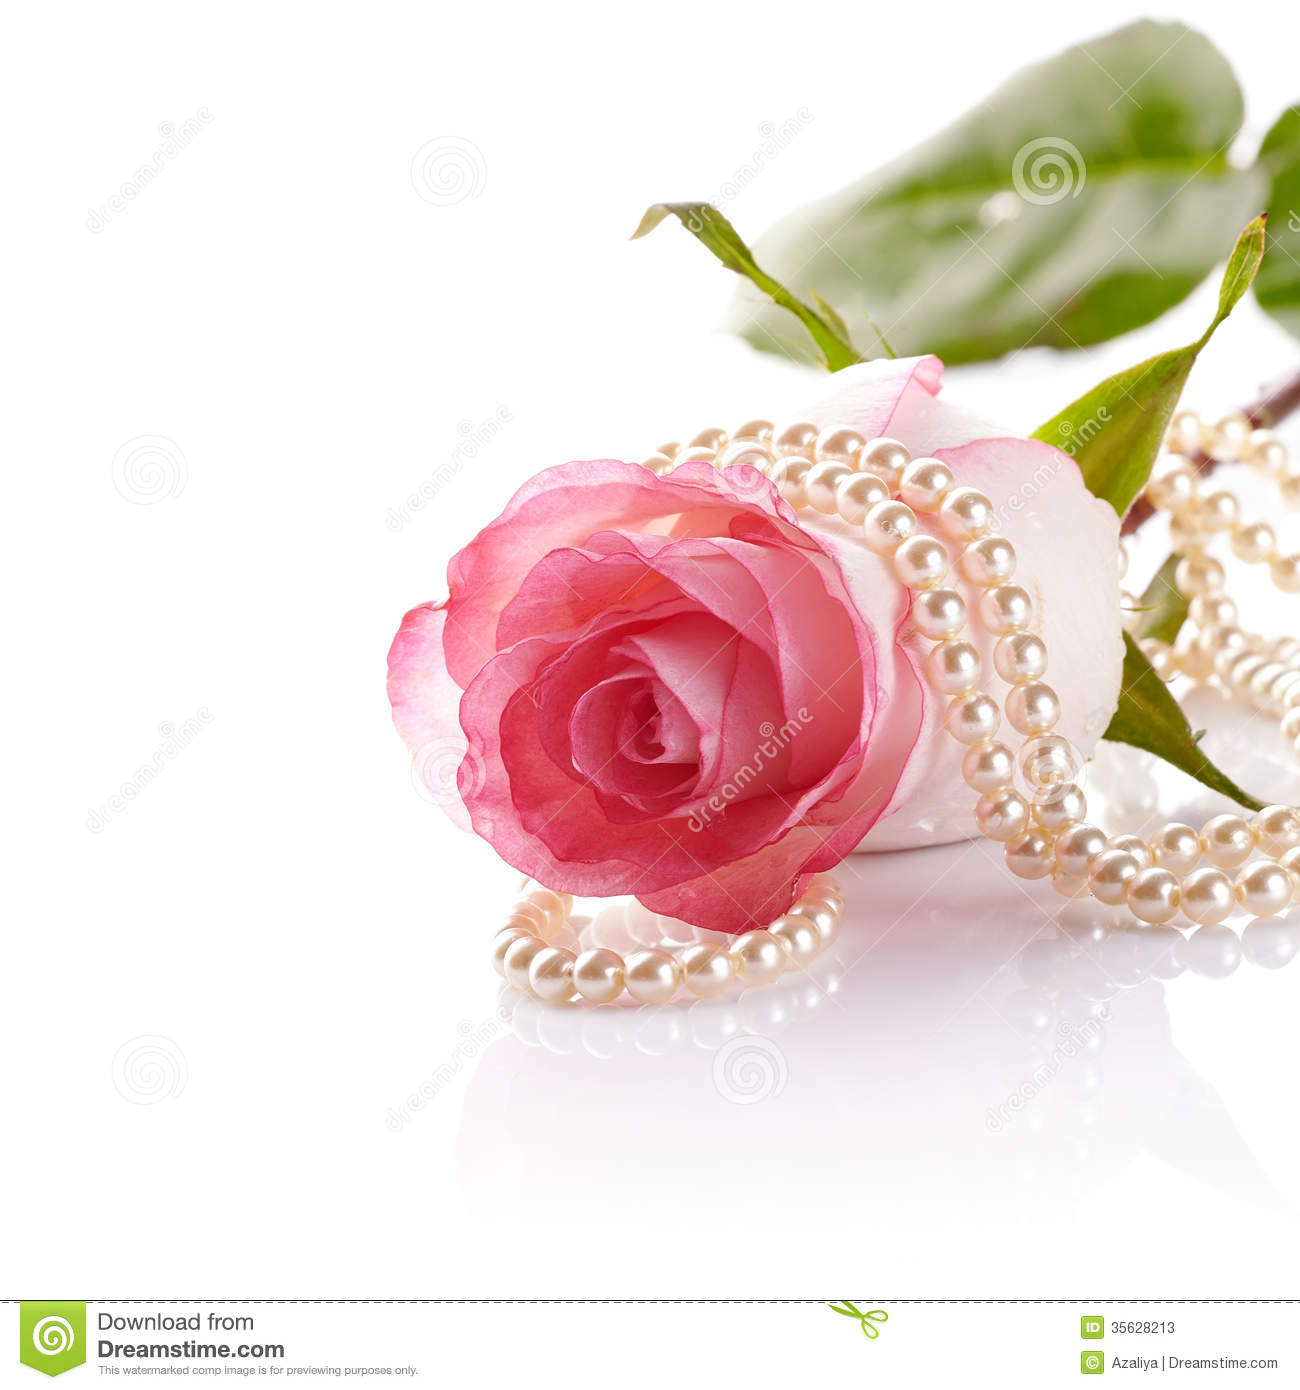 roses and pearls - photo #23